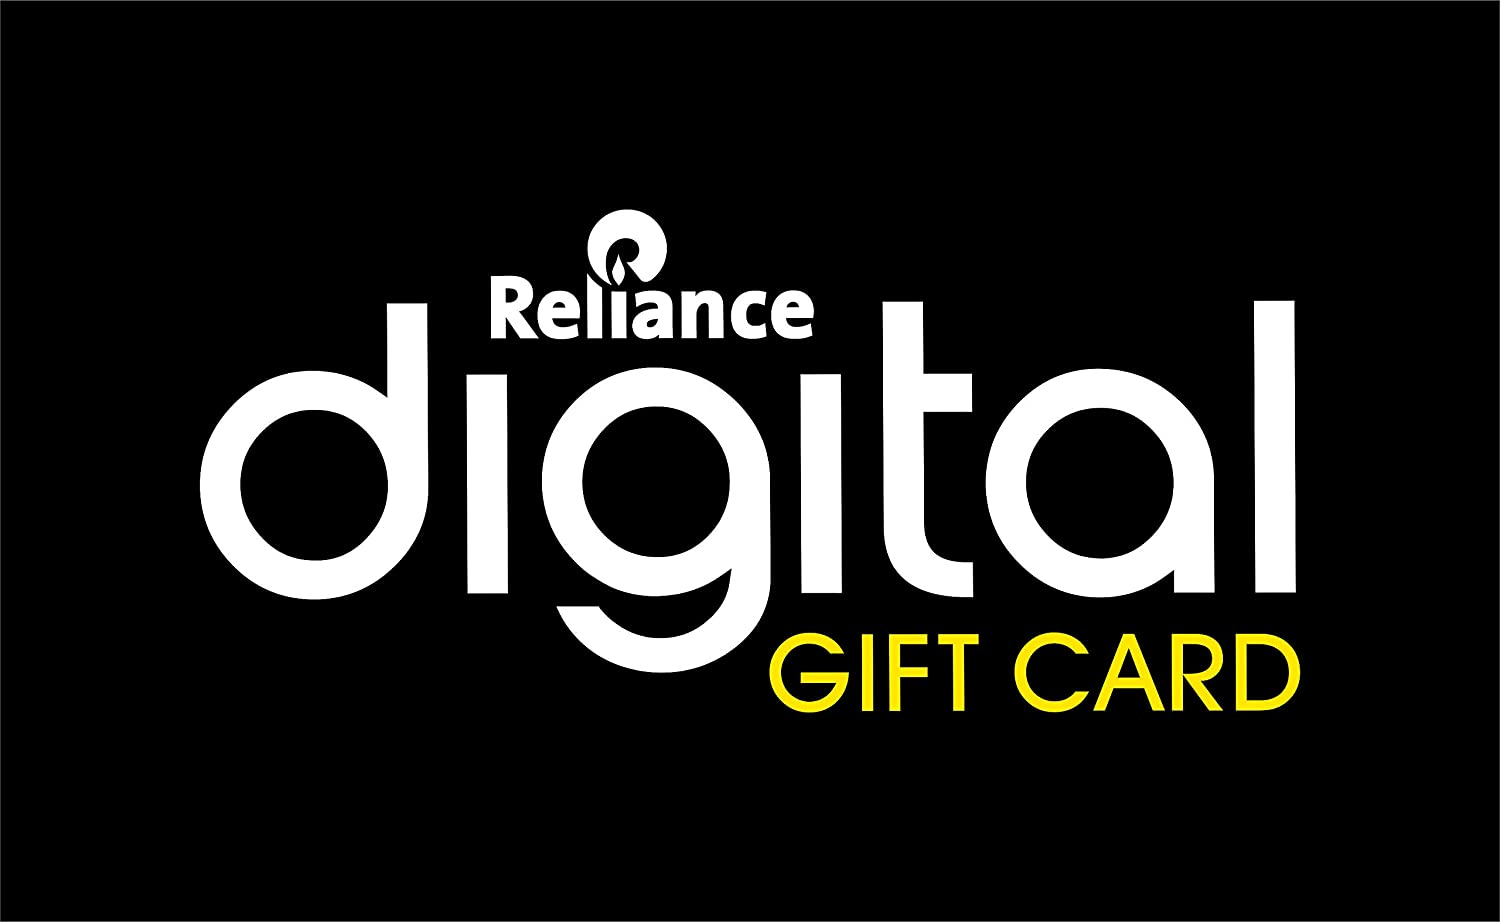 Reliance gift card design and art work